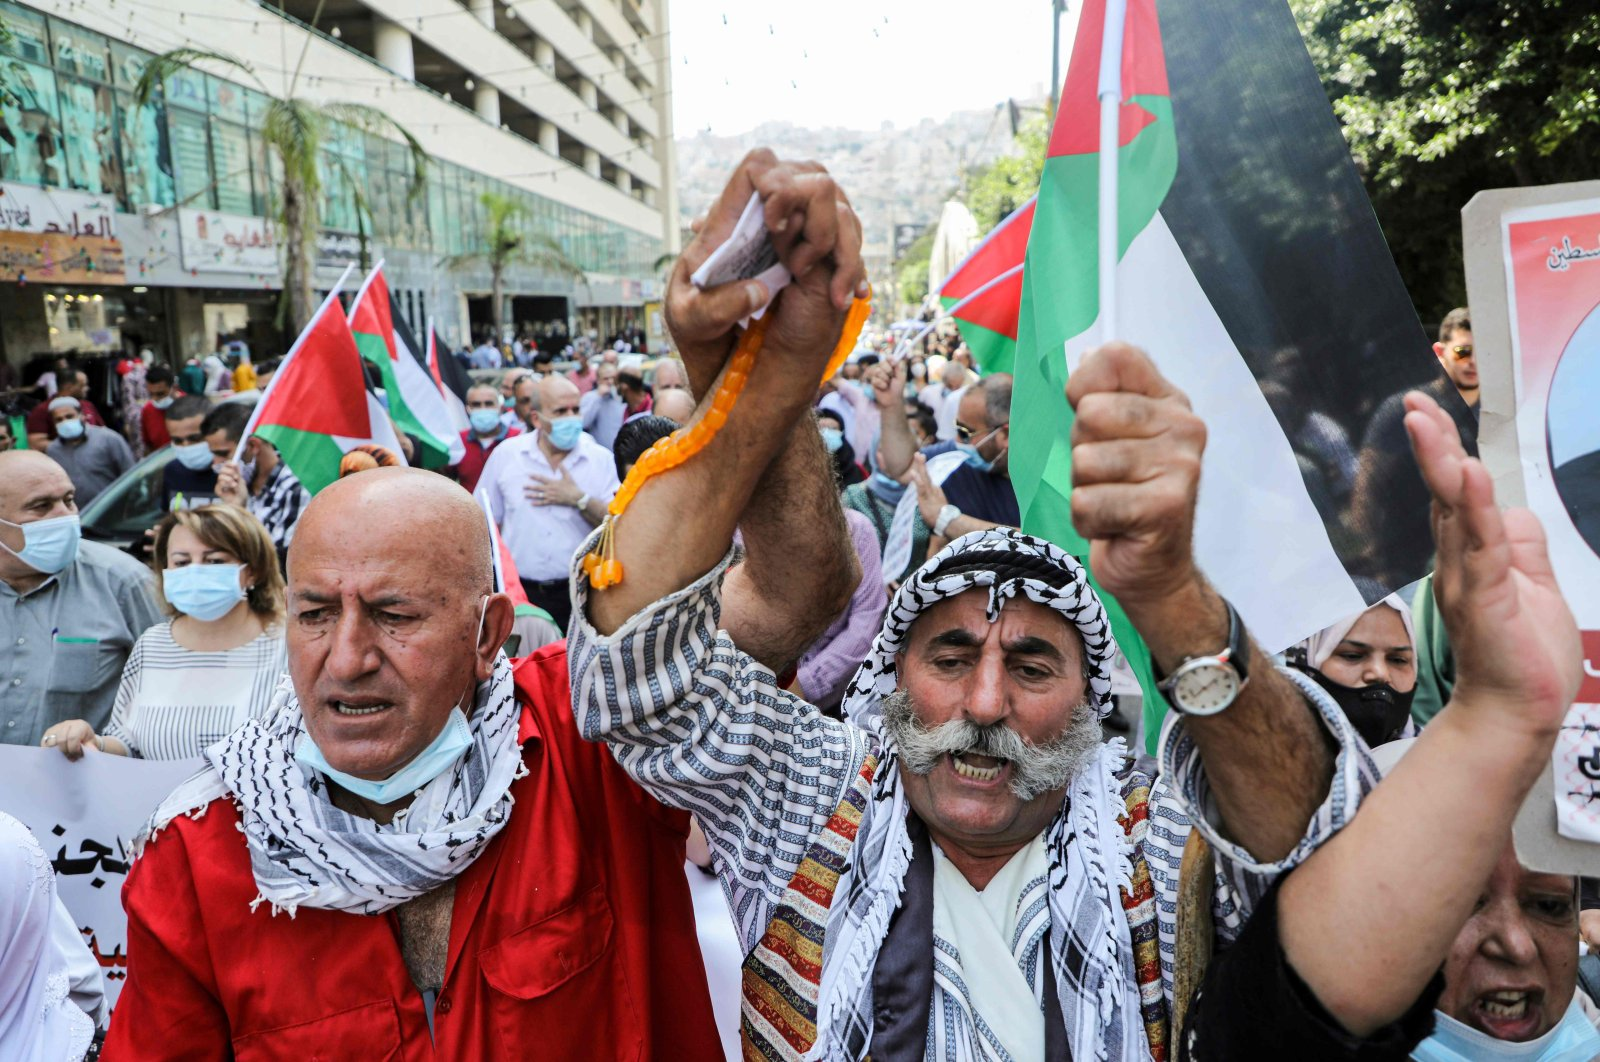 Demonstrators take to the streets with Palestinian flags during a protest in the city of Nablus, the occupied West Bank, Sept. 15, 2020. (AFP Photo)